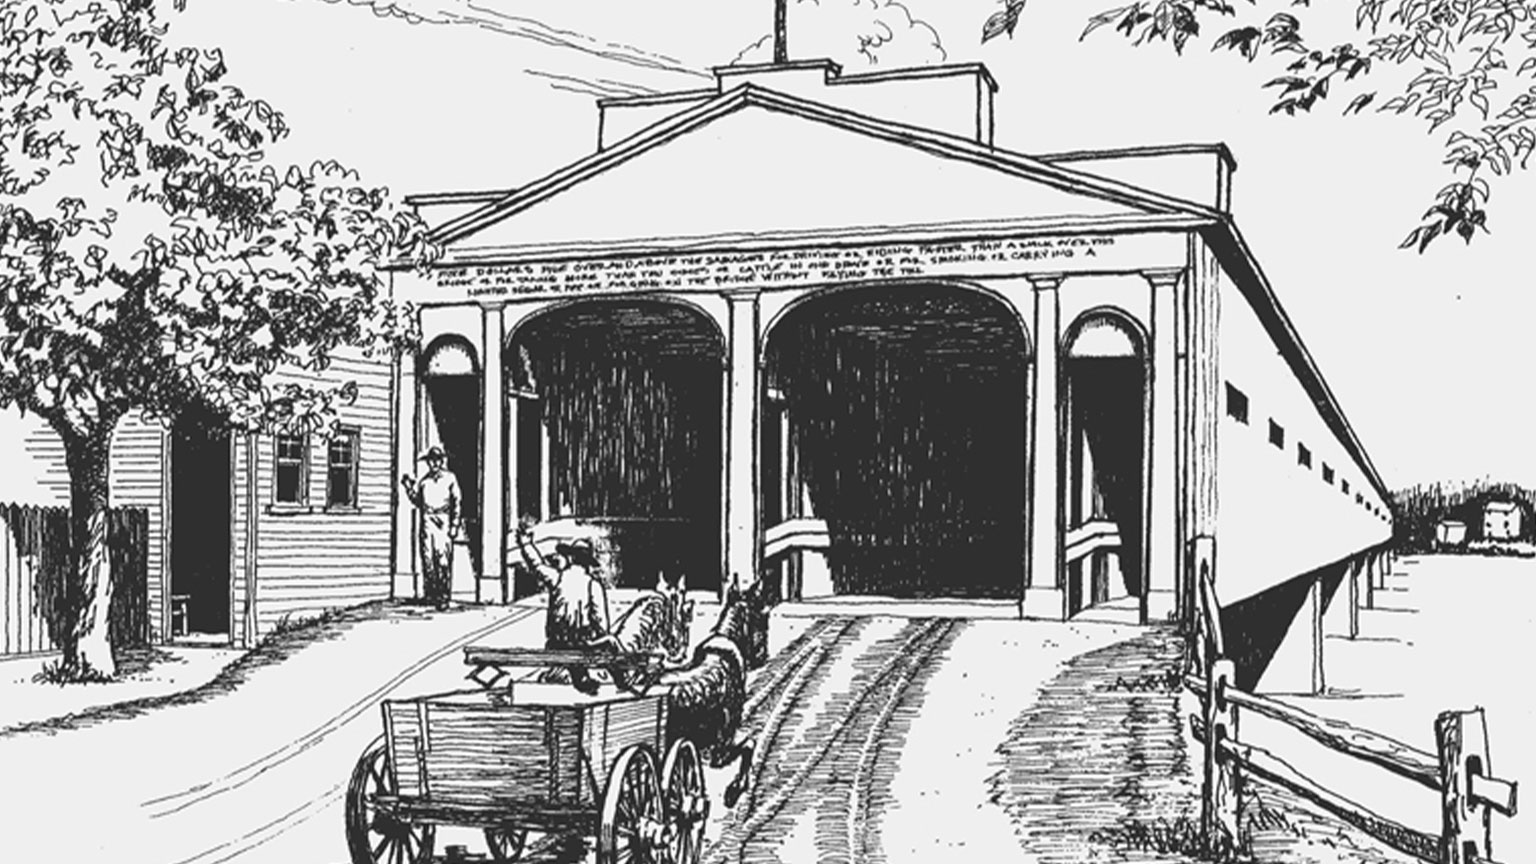 This is a drawing of the immense covered wooden bridge that onces linked New Hope, Pennsylvania and Lambertville, New Jersey.